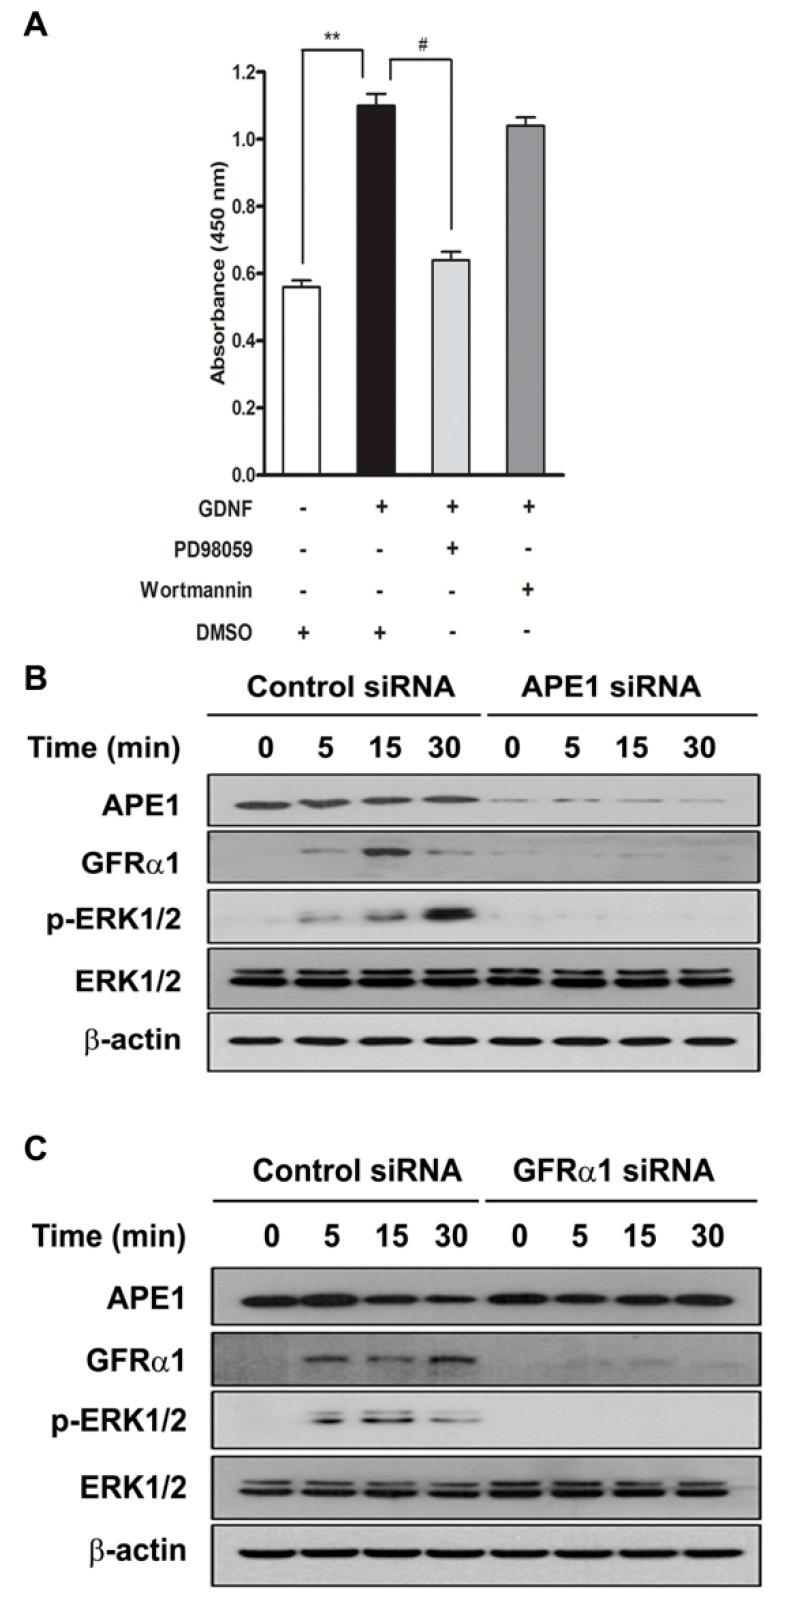 APE1 and GFRα1 increases ERK phosphorylation in response to GDNF. ( A ) MIA PaCa-2 cells were pretreated with MEK-1 inhibitor PD98059 (10 μM) and the PI3K inhibitor Wortmannin (200 μM) and then treated with or without 50 ng/mL GDNF for 24 h. After treatment, cell proliferation was analyzed by WST-1 assay. Data are expressed as mean ± standard deviation from three independent experiments. ** and # denote p